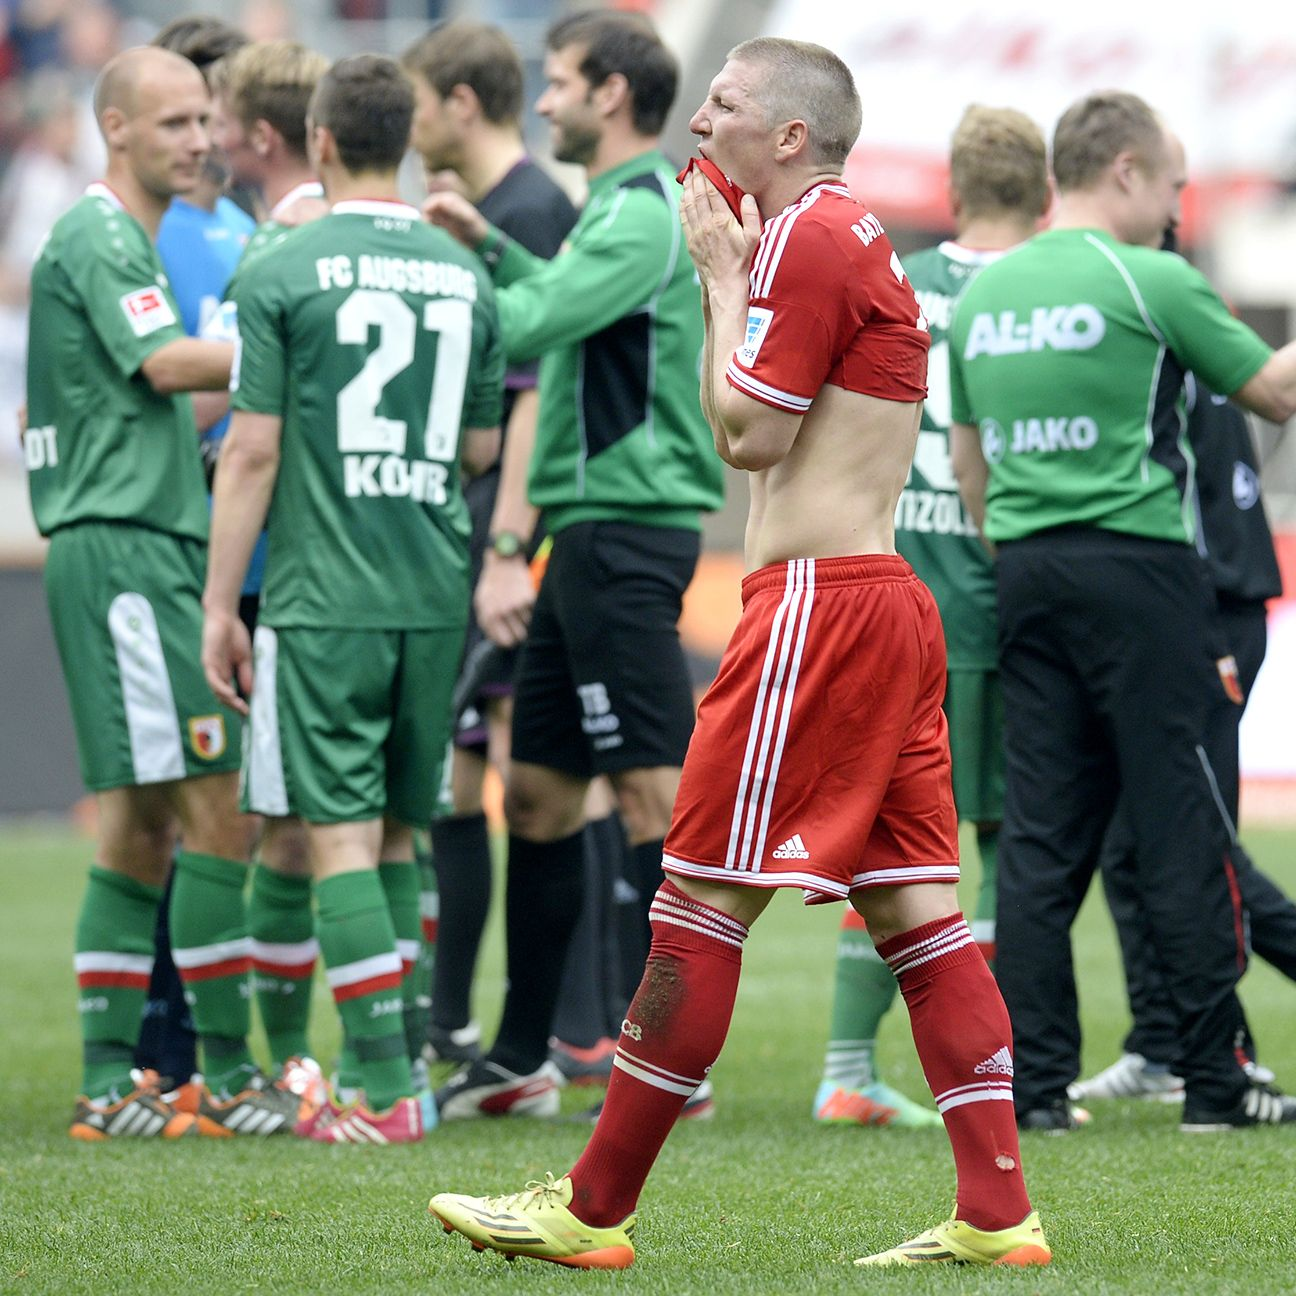 Bayern's 1-0 loss to Augsburg last season was the first of four defeats they suffered during the month of April.